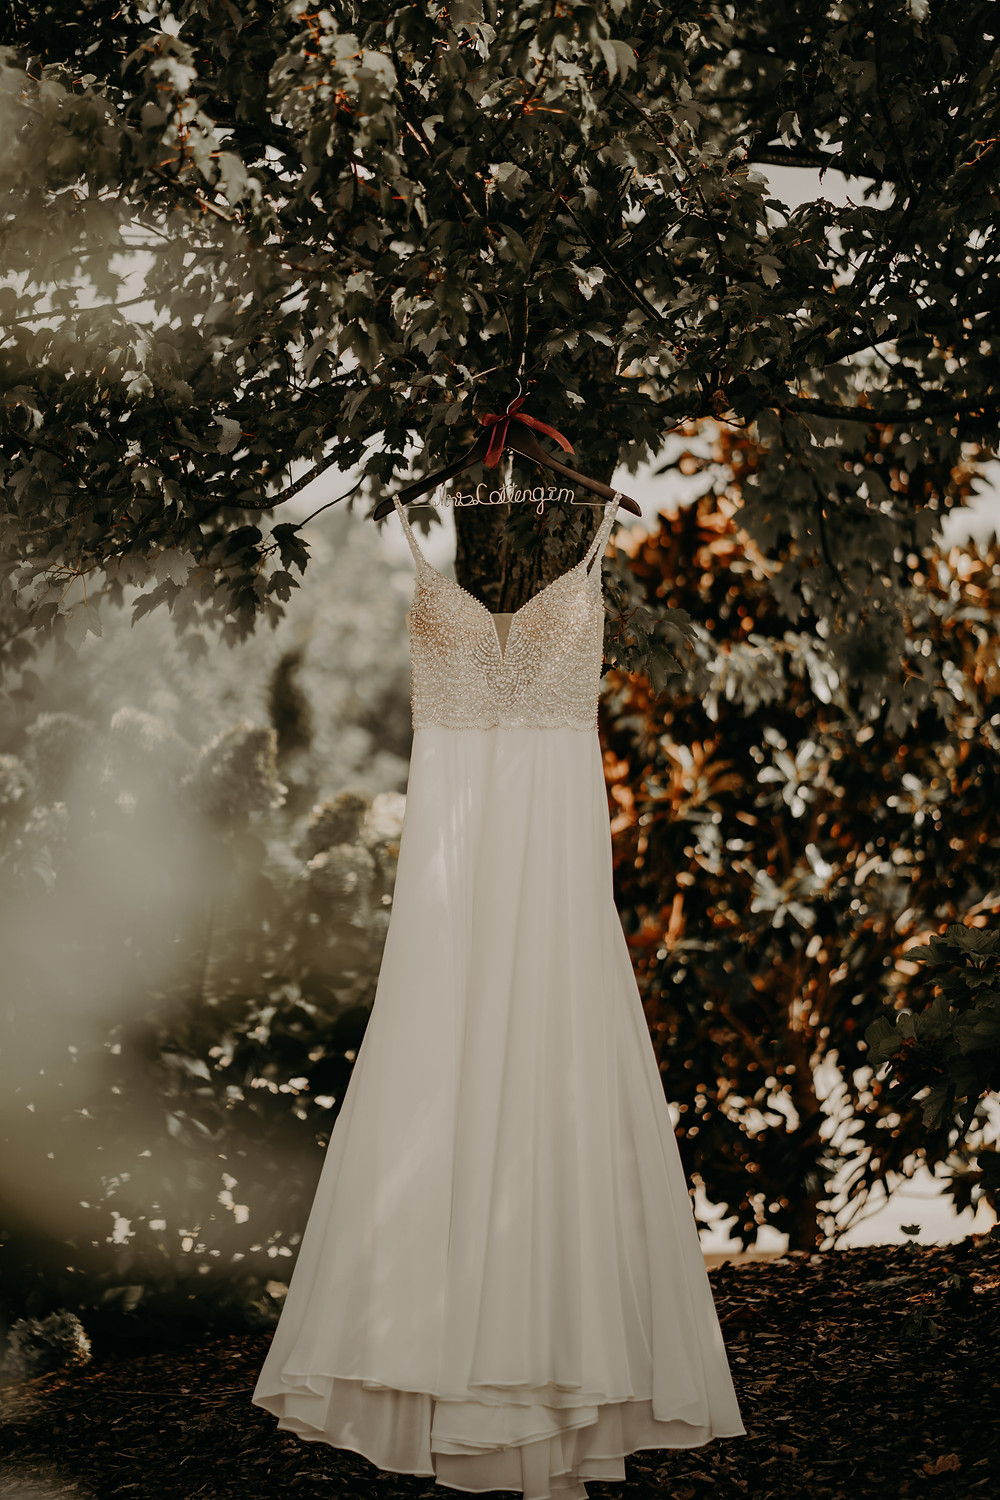 white wedding dress with stones in a hanger